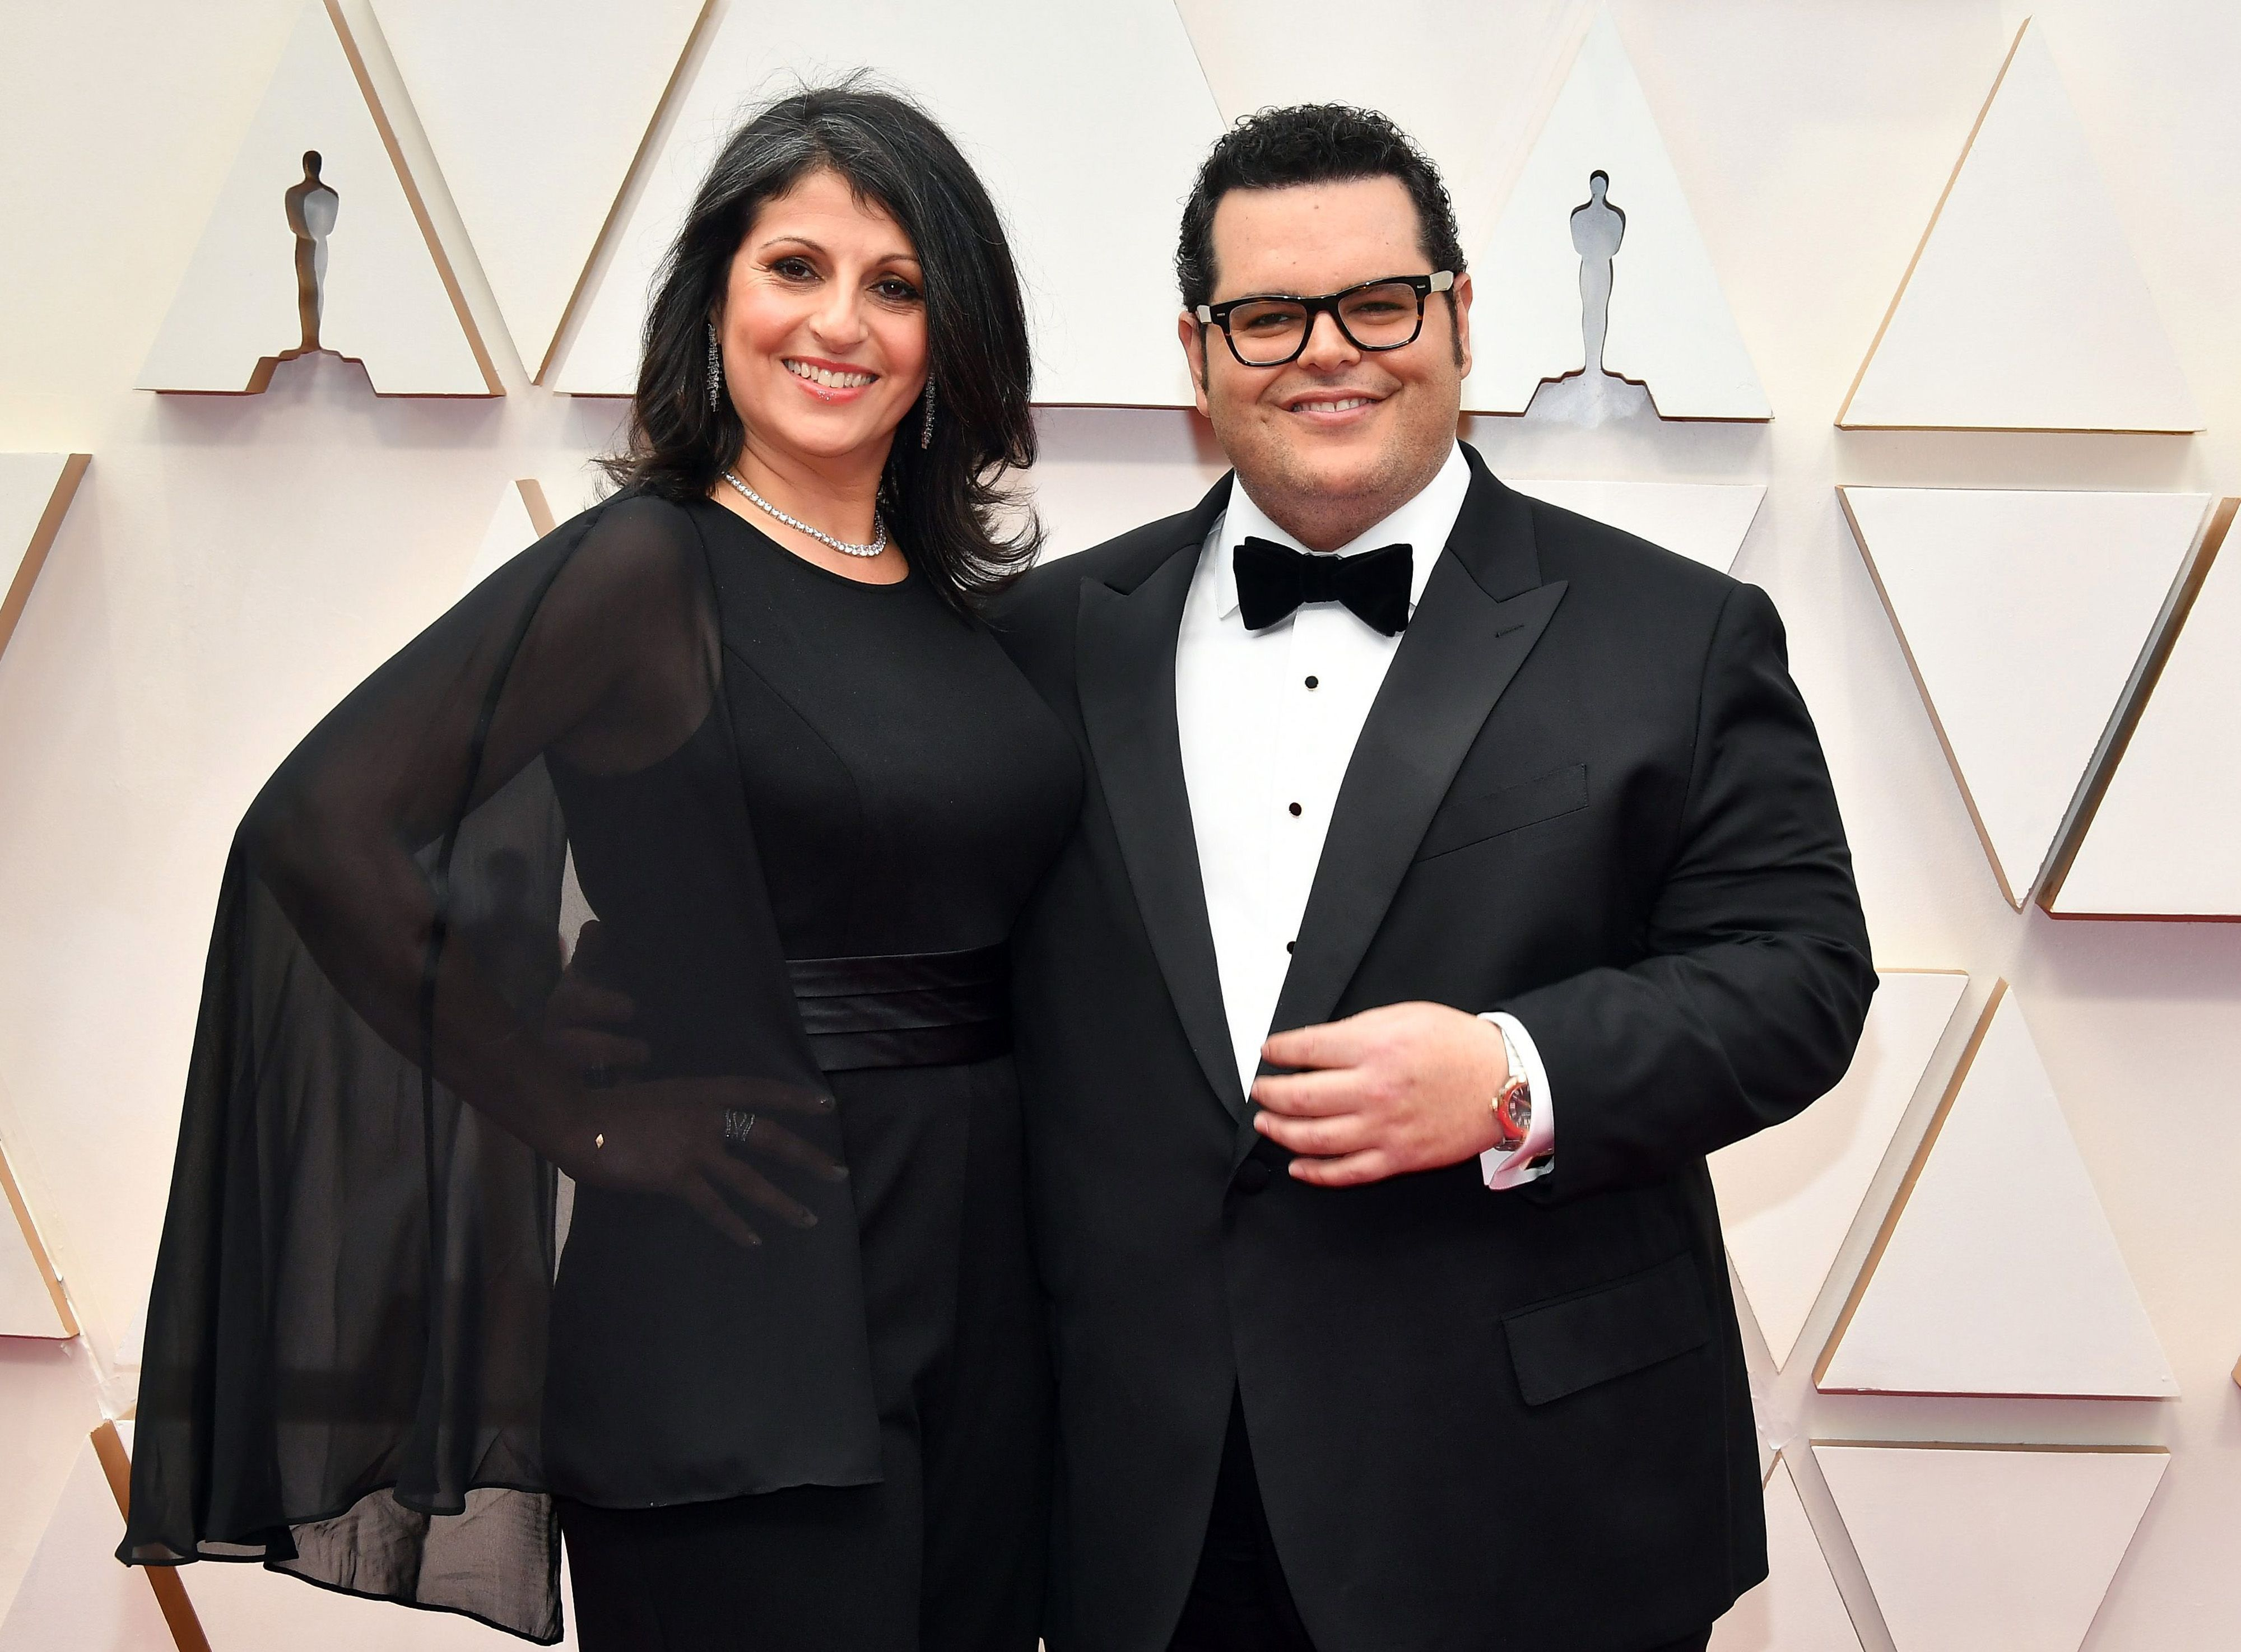 HOLLYWOOD, CALIFORNIA - FEBRUARY 09: (L-R) Ida Darvish and Josh Gad attend the 92nd Annual Academy Awards at Hollywood and Highland on February 09, 2020 in Hollywood, California. (Photo by Amy Sussman/Getty Images)